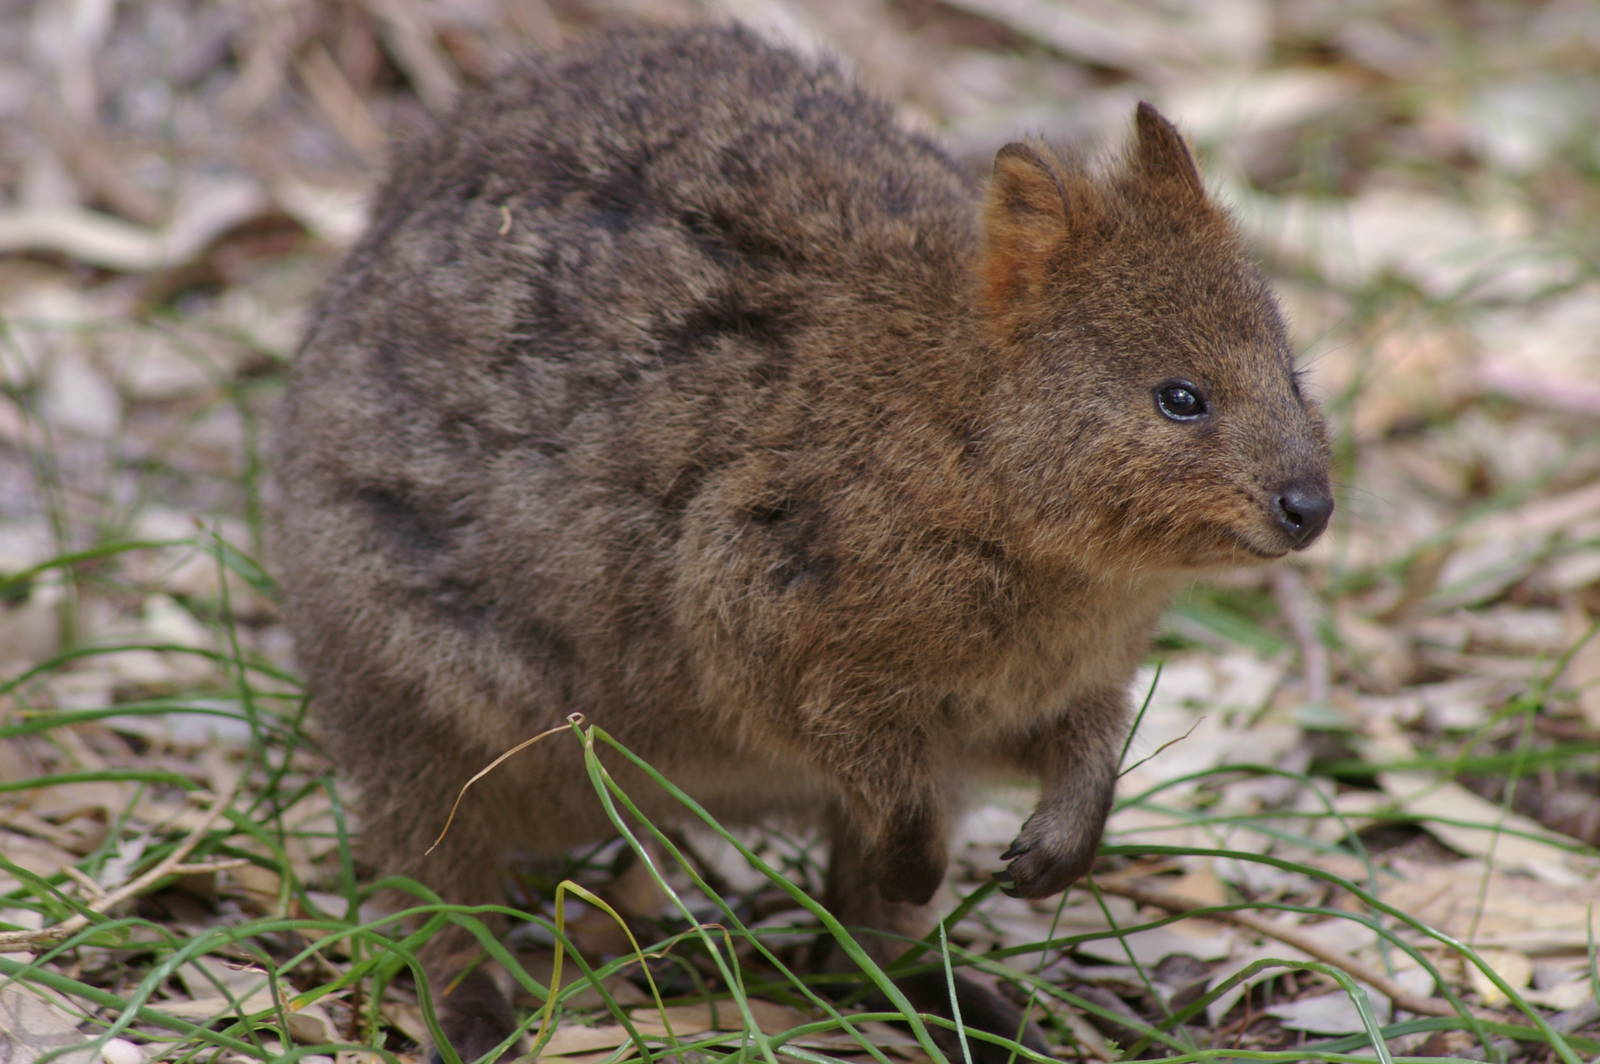 Sometimes quokkas are teh chubbs